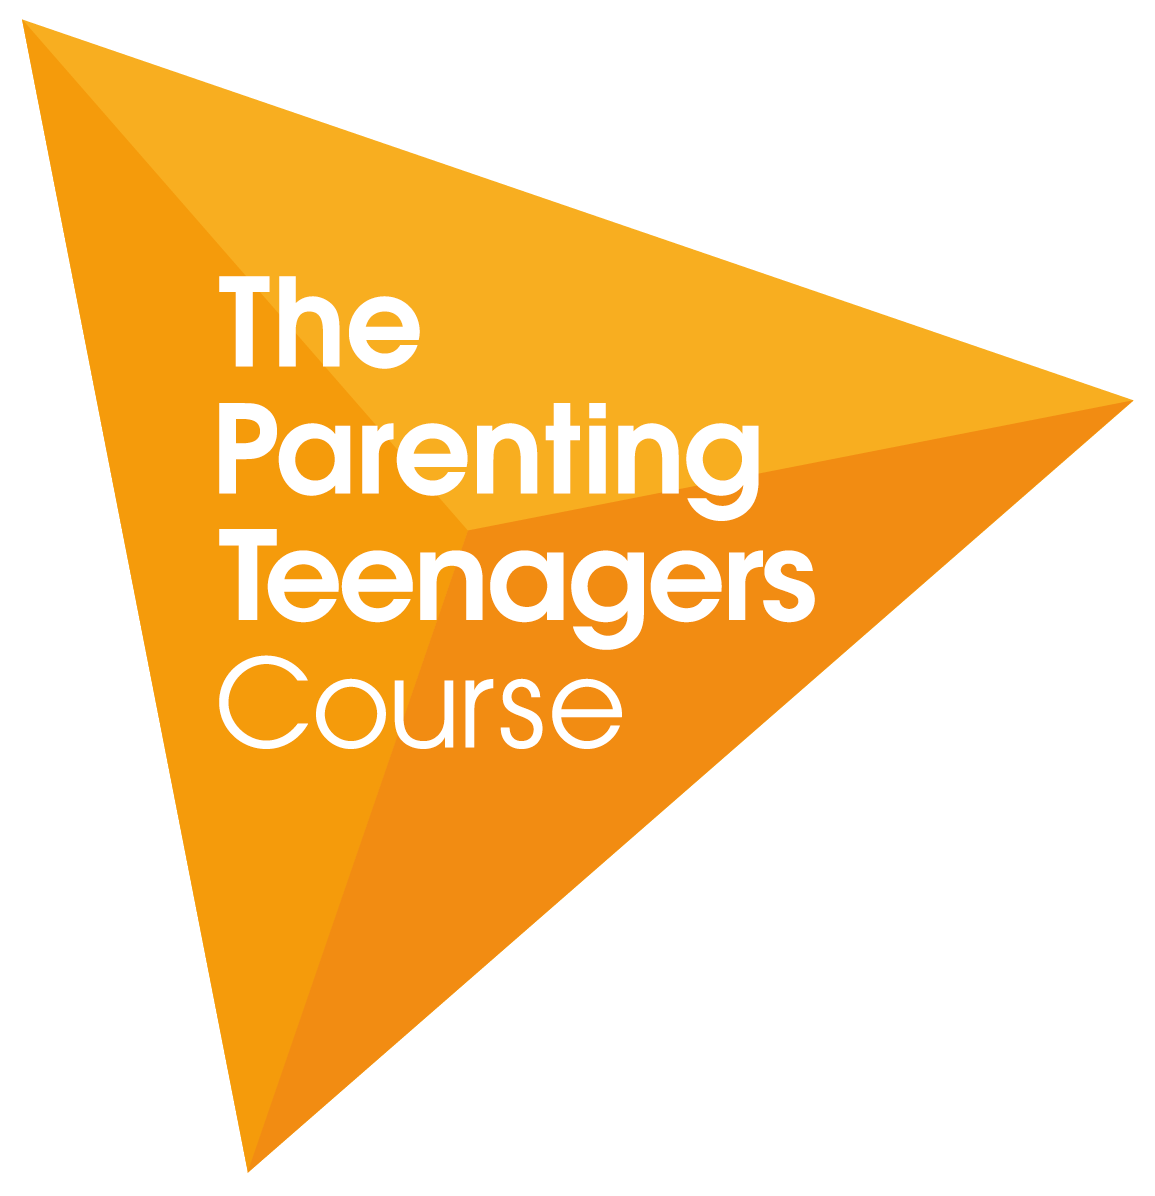 Parenting Teenagers Course logo